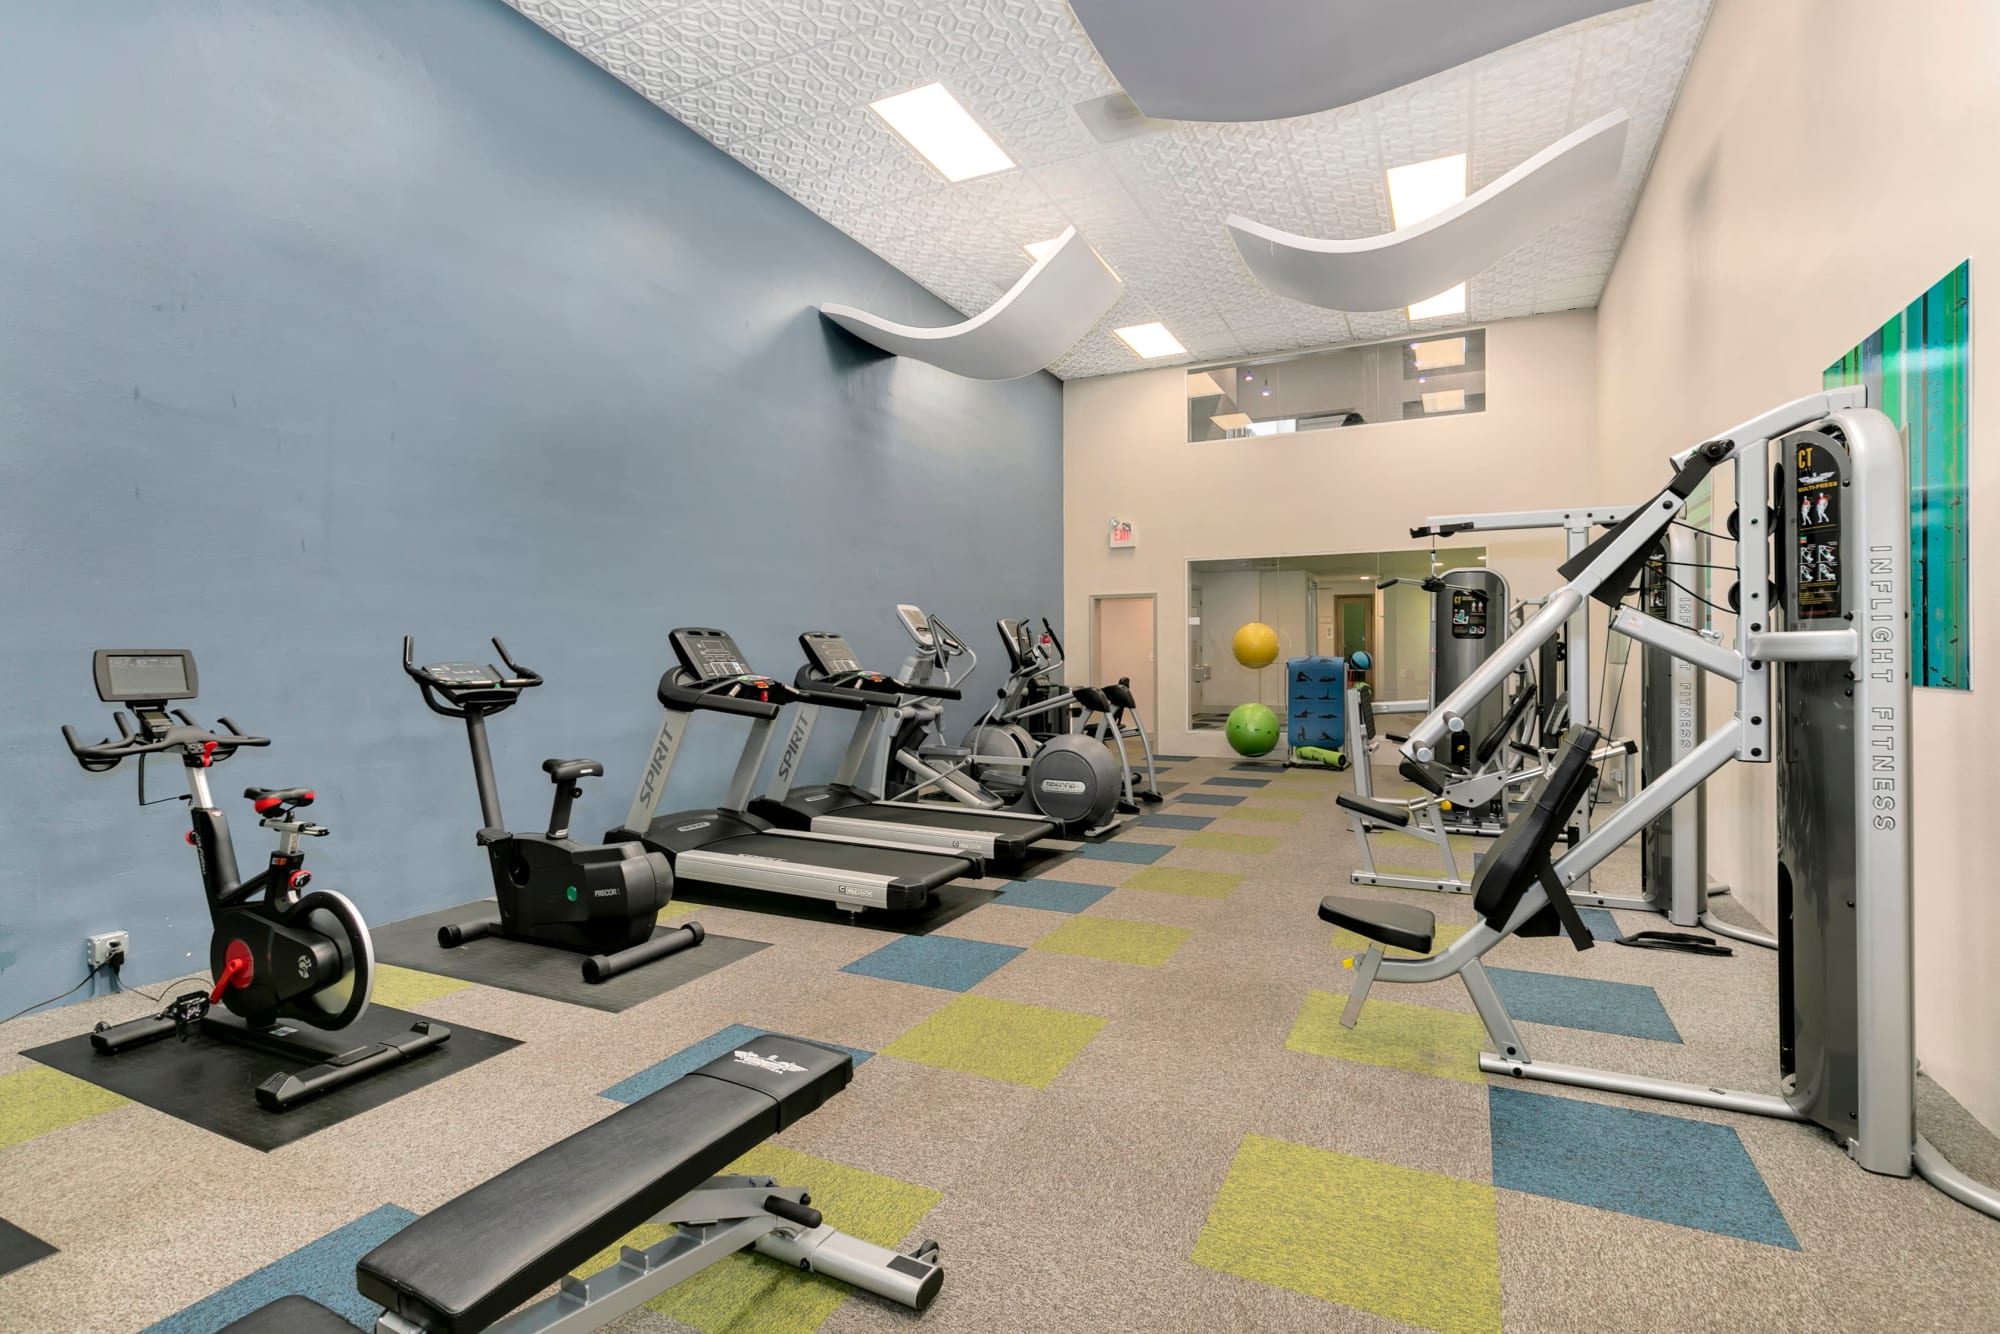 Fitness center with cardio and weight machines at Autumn Chase Apartments in Vancouver, Washington